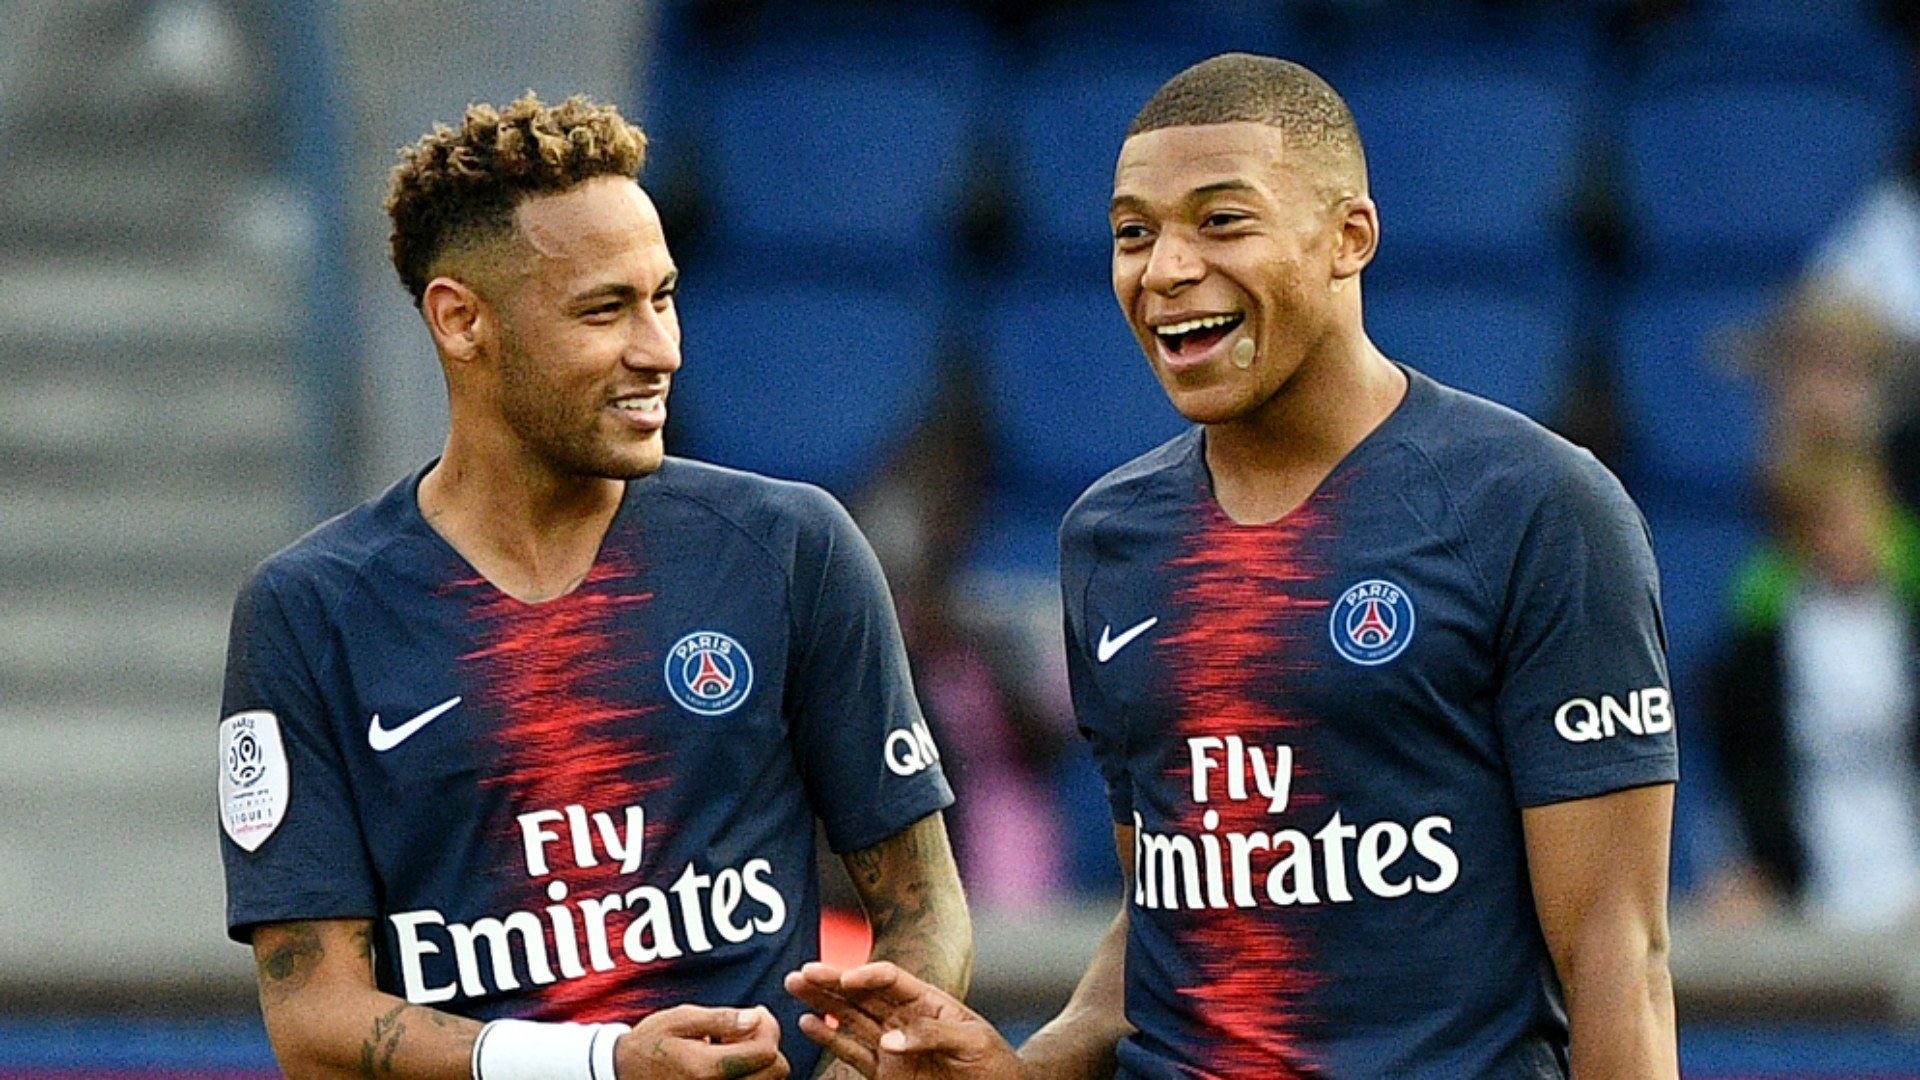 PSG: Neymar & Kylian Mbappe Injuries: Knocks 'not Very Serious